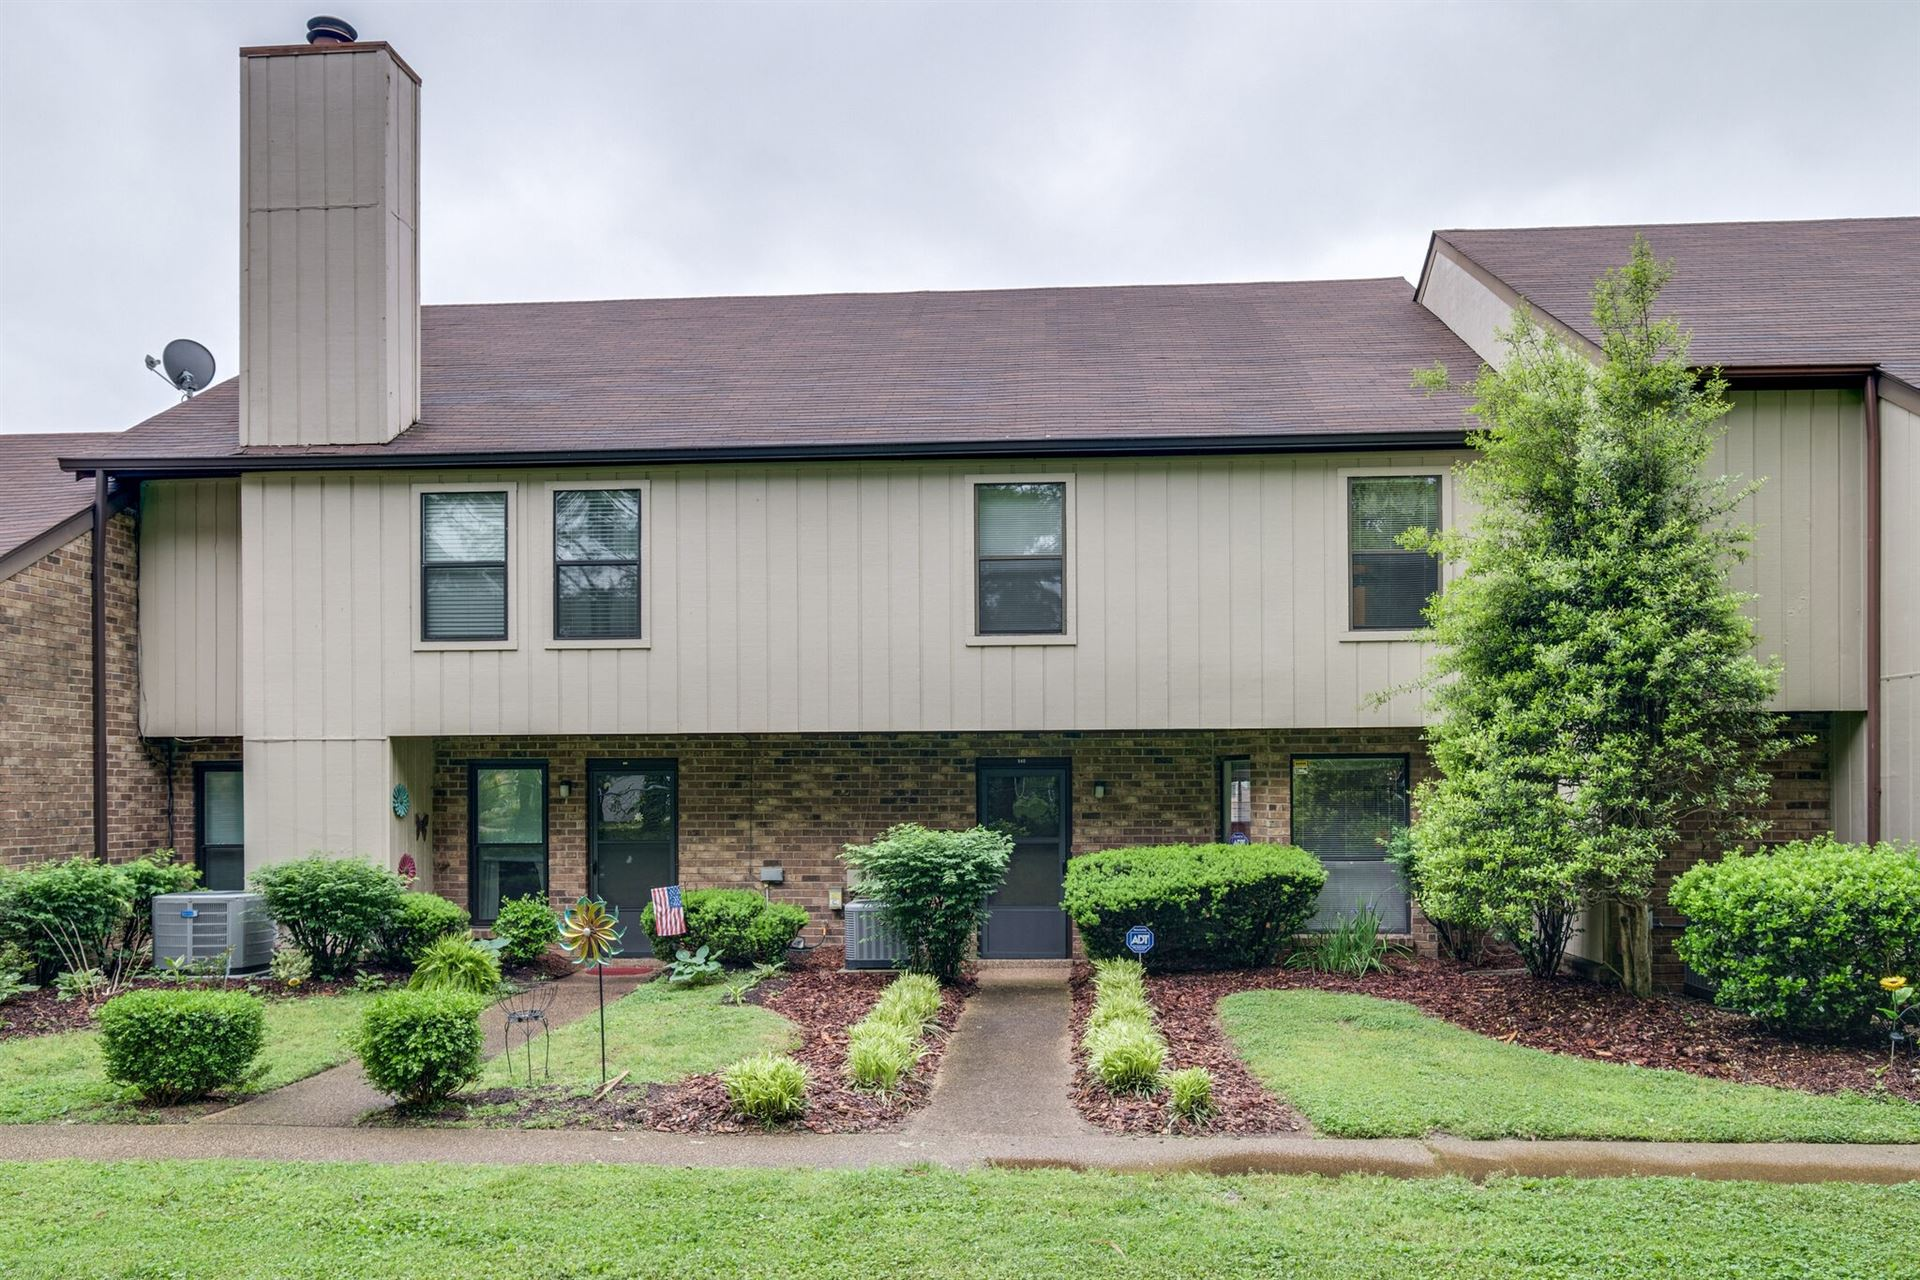 940 Old Fountain Ct, Hermitage, TN 37076 - MLS#: 2250368